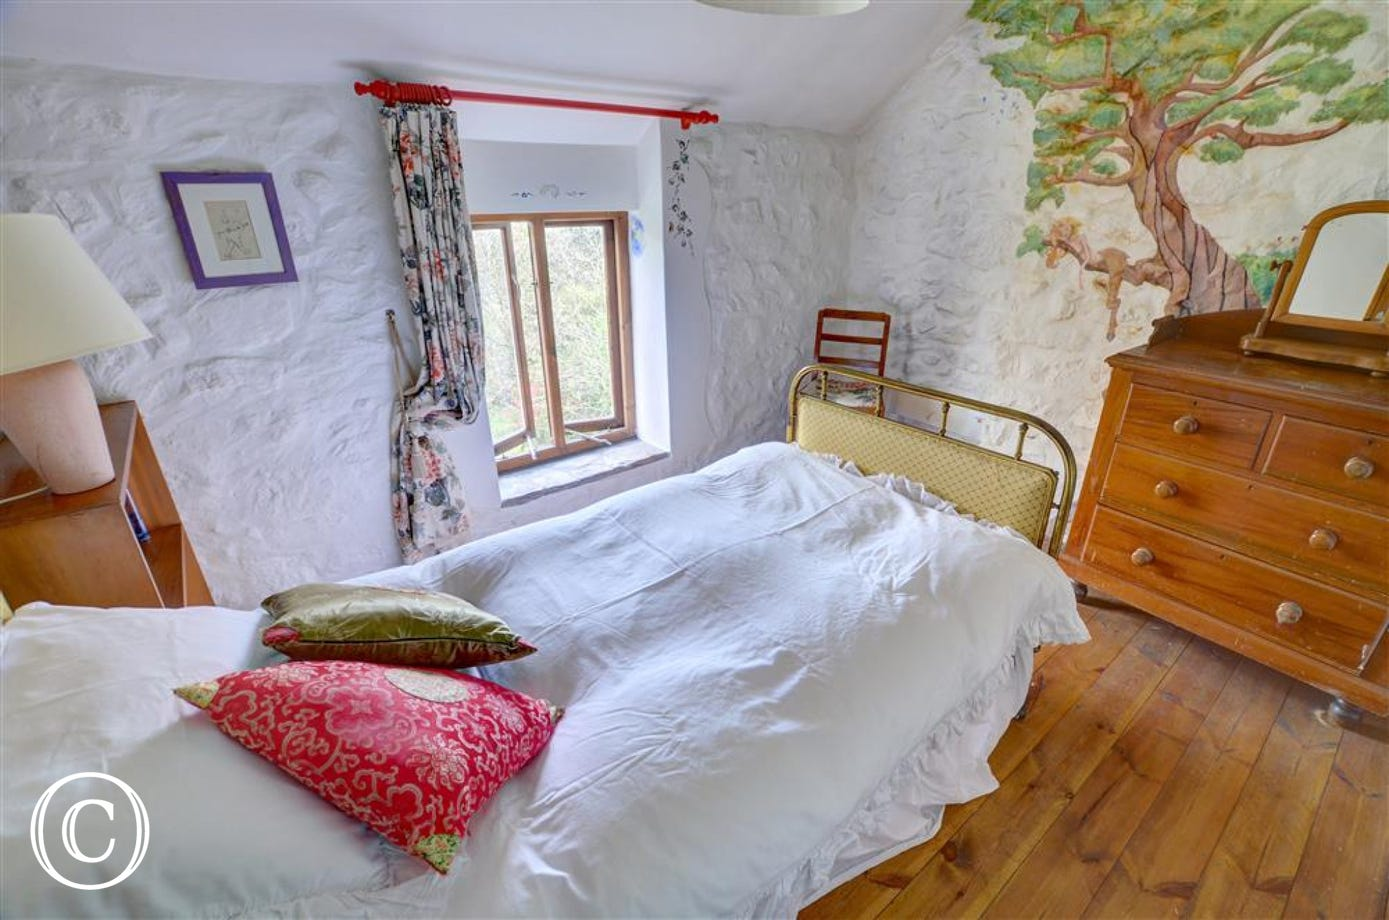 Murals adorn the walls of this single bedroom, with emulsioned stone walls and pine floor